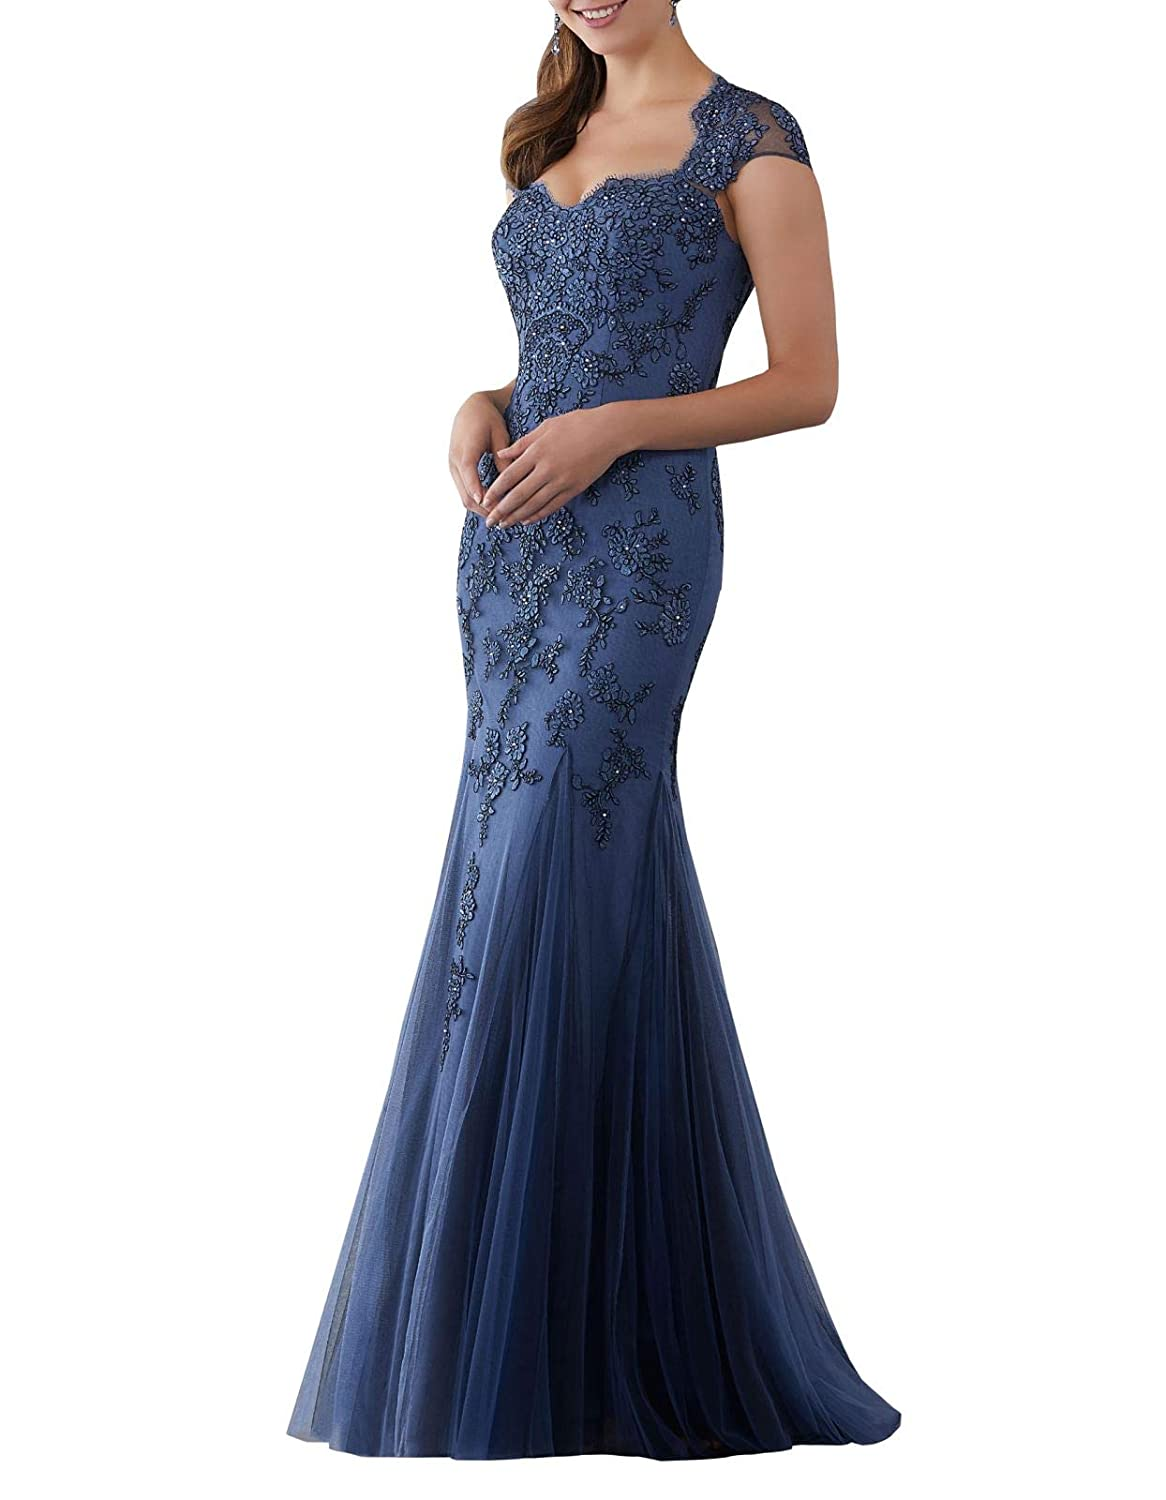 bluee Aishanglina Caps Shoulder Embroidered Appliques Beaded Evening Gown Floor Length Party Tulle Dress